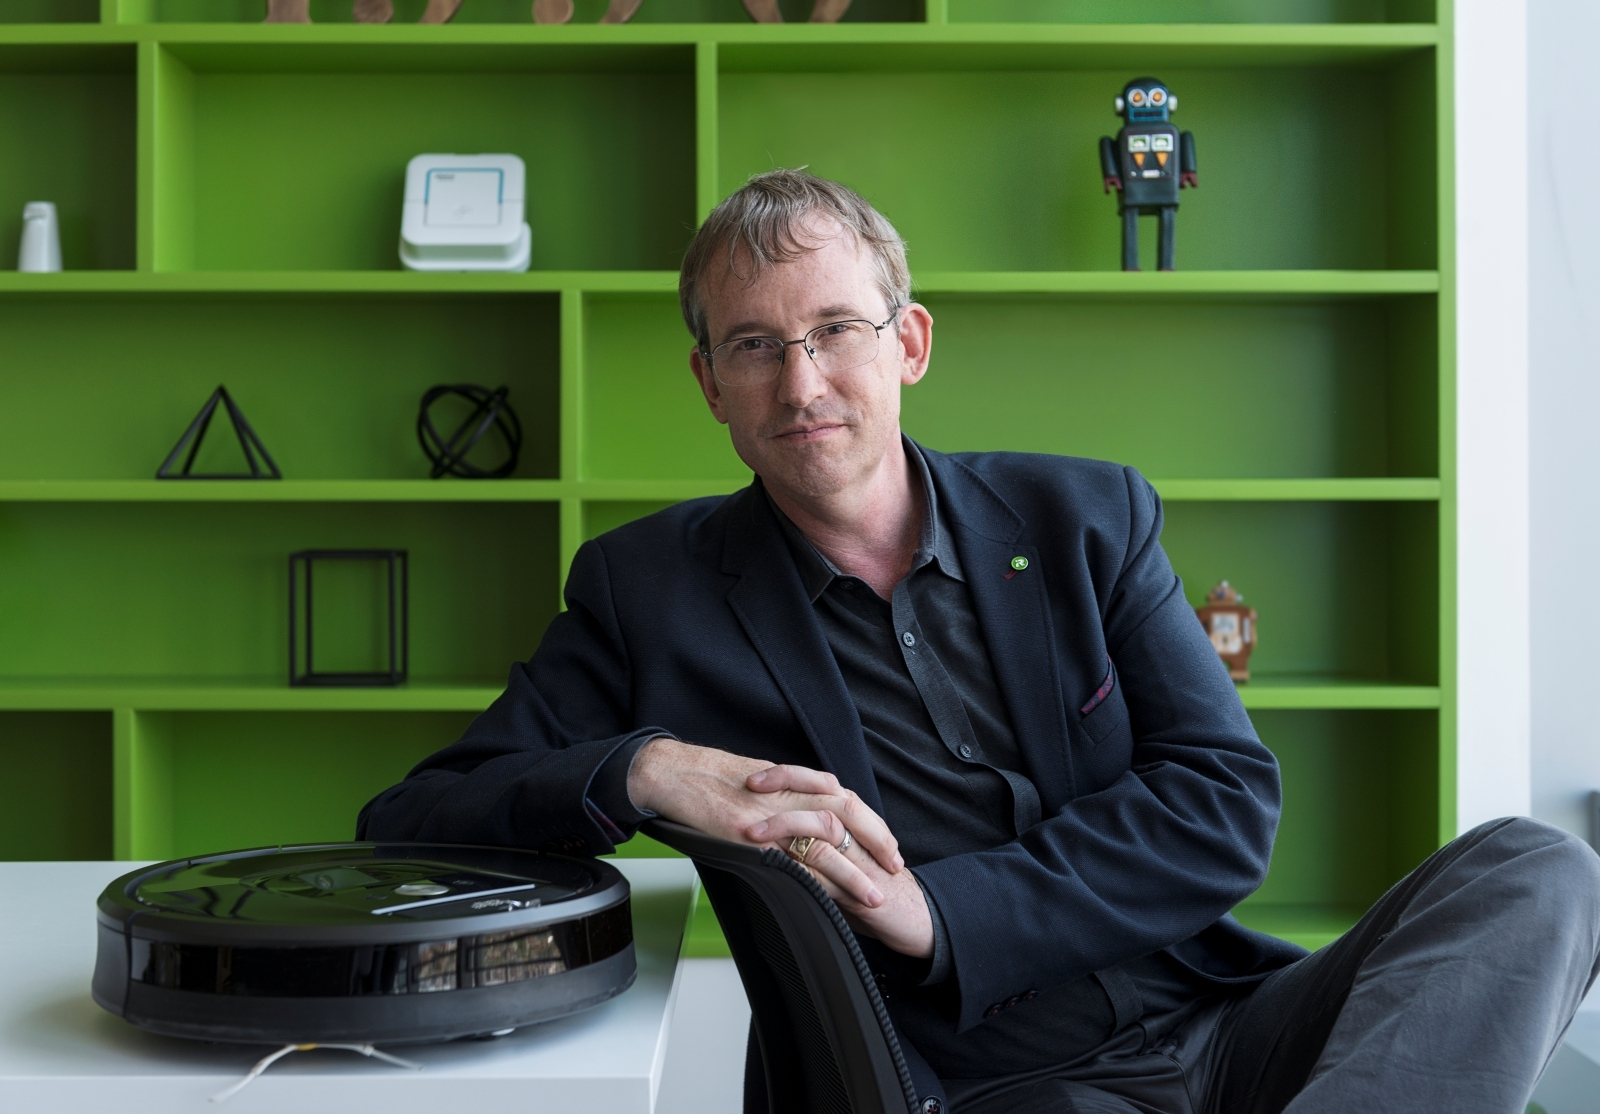 IRobot's CEO defends Roomba home mapping as privacy concerns arise